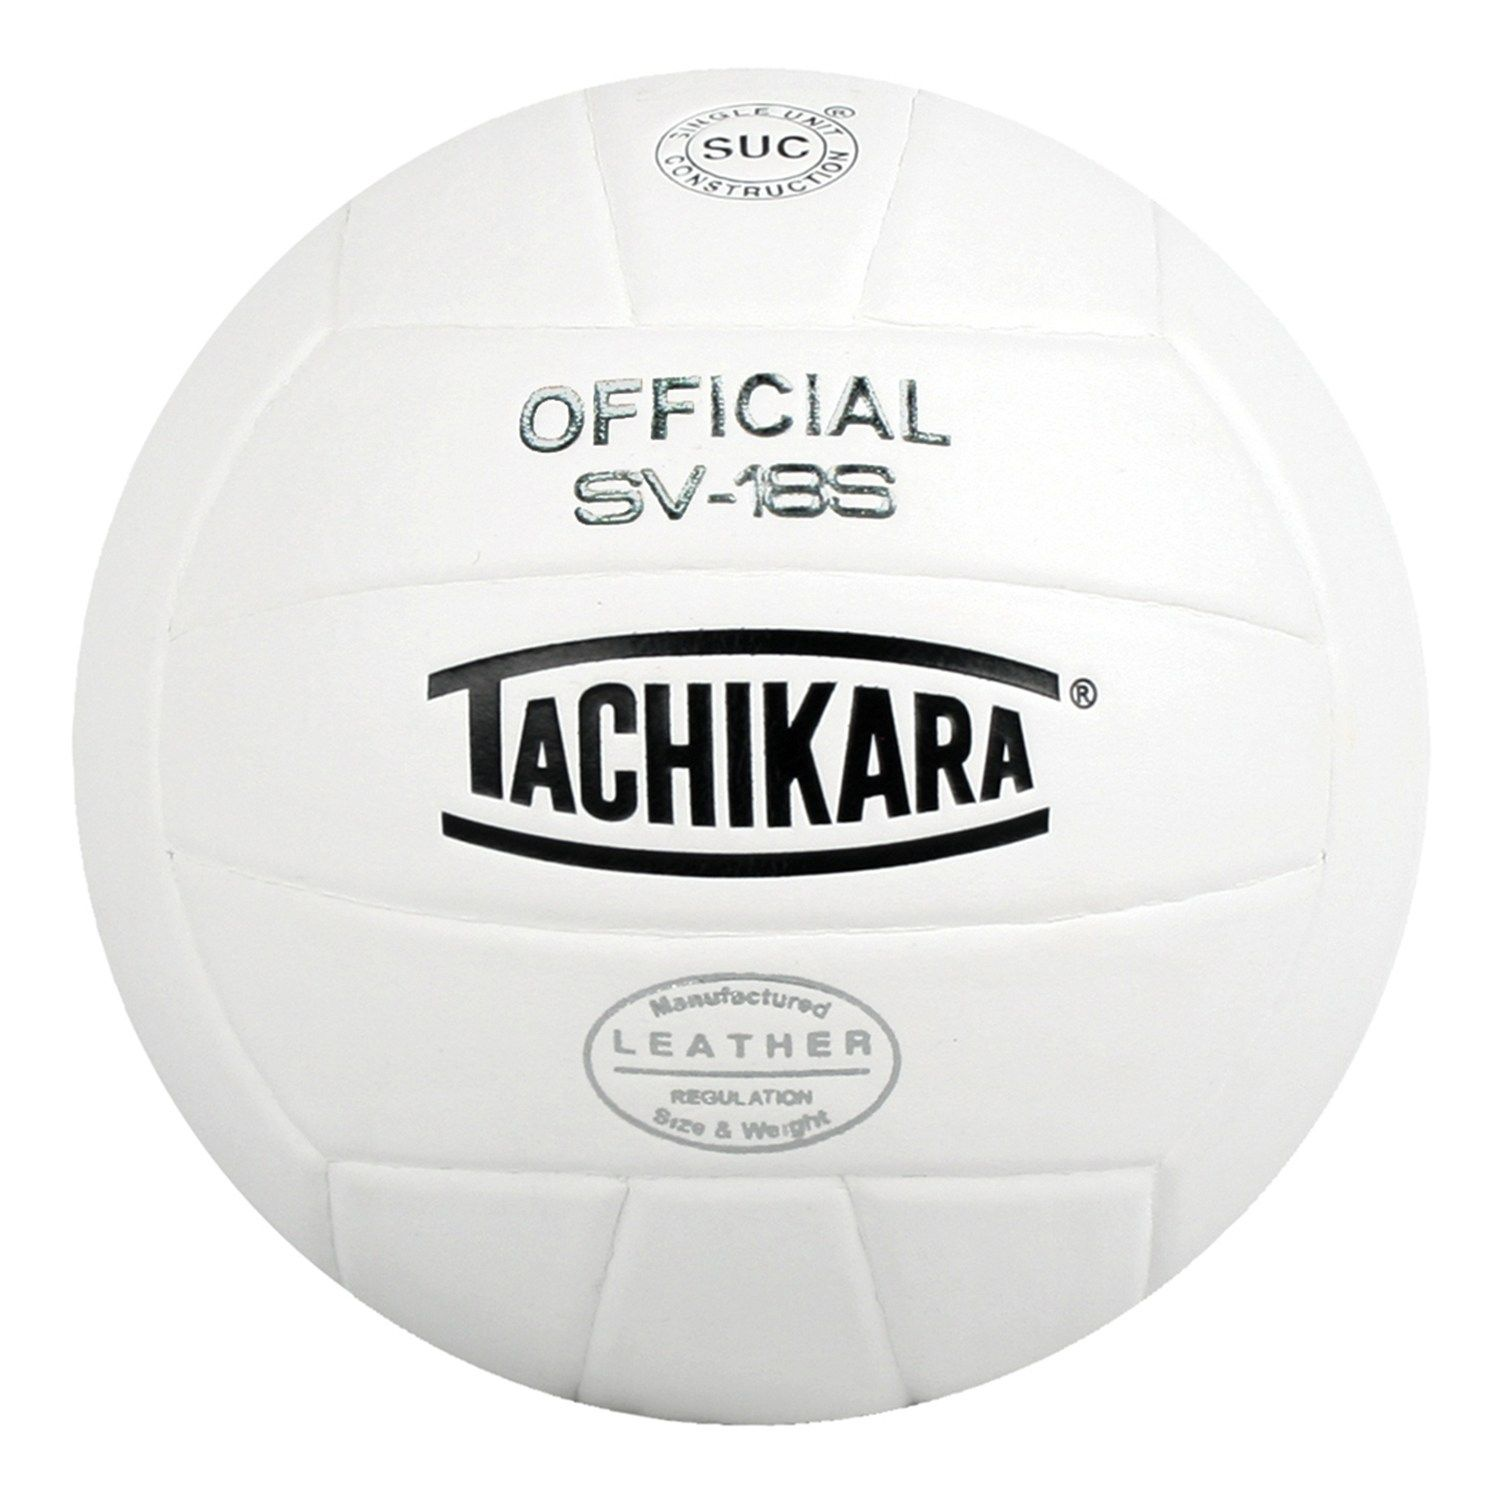 Tachikara Official Sv18s Composite Leather Volleyball In 2019 Vintage Styles Dresses Volleyball Sports Tachikara Volleyball